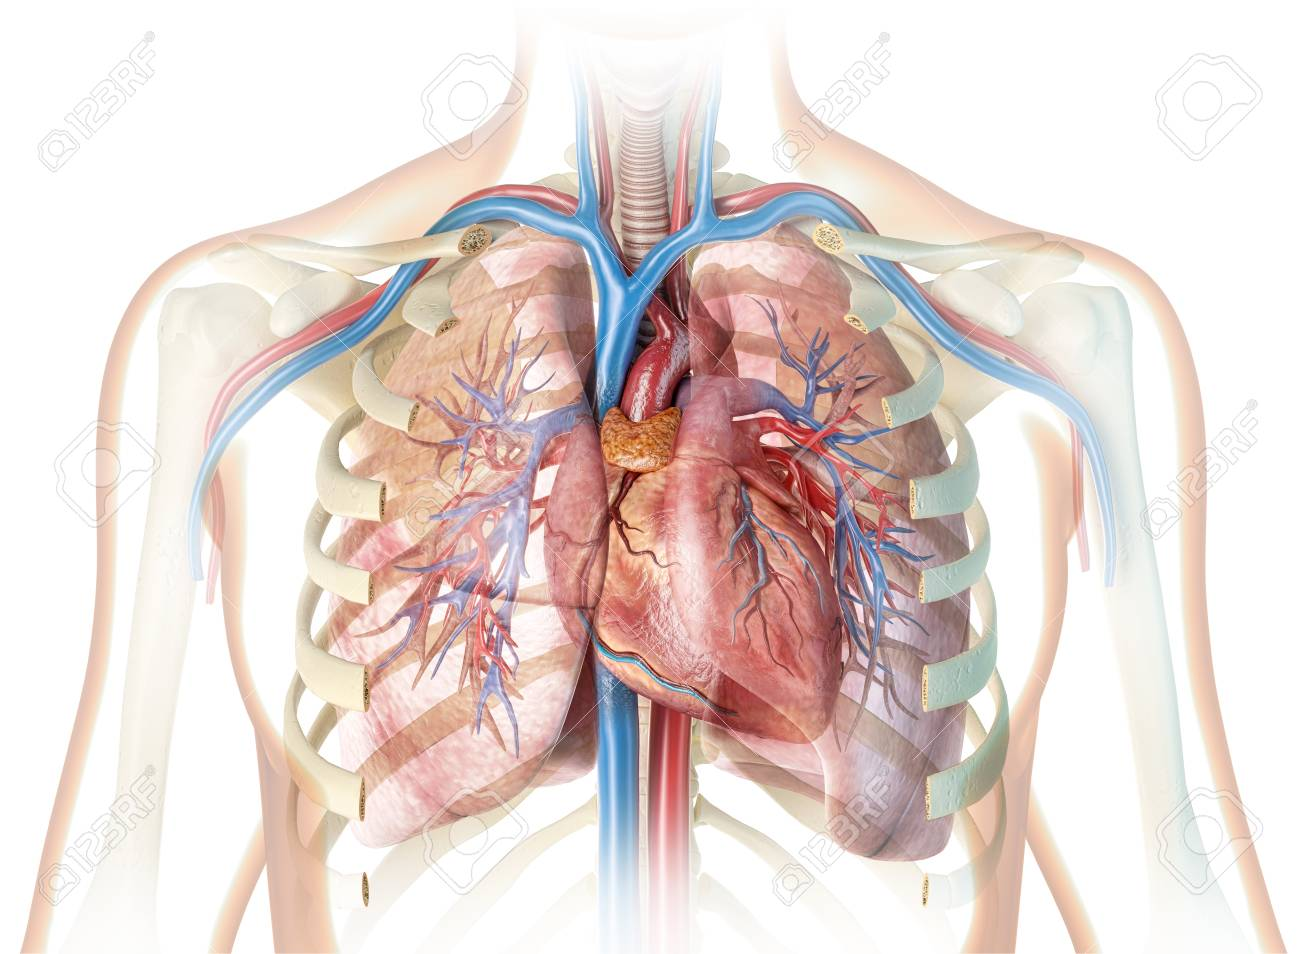 Human Heart With Vessels And Cut Rib Cage On White Background Stock Photo Picture And Royalty Free Image Image 120522071